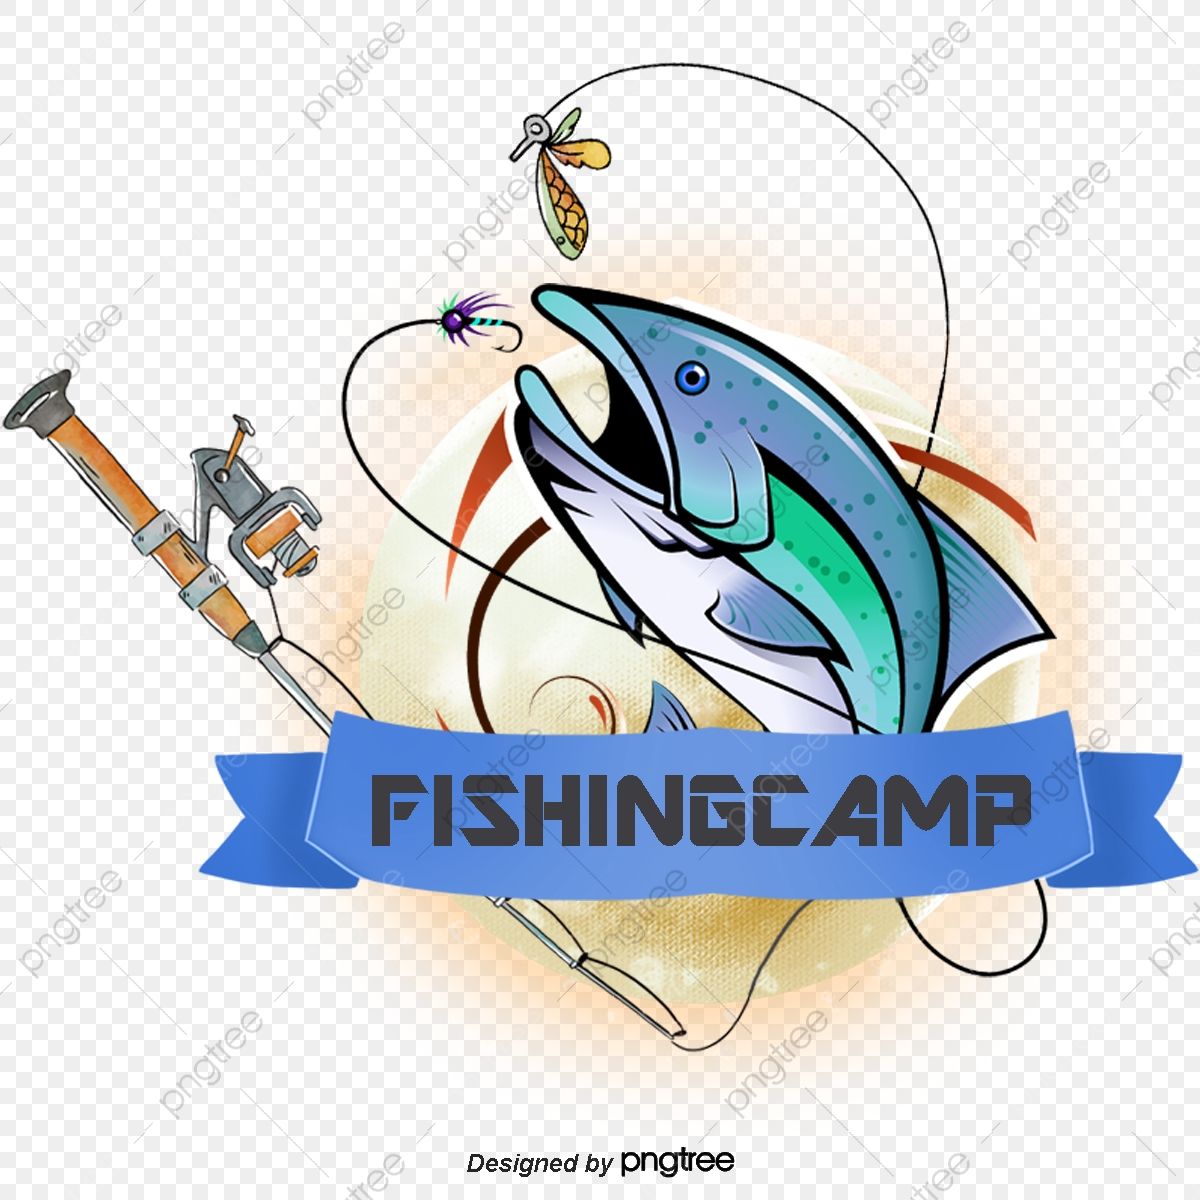 Fishing Club Png Images Vector And Psd Files Free Download On Pngtree